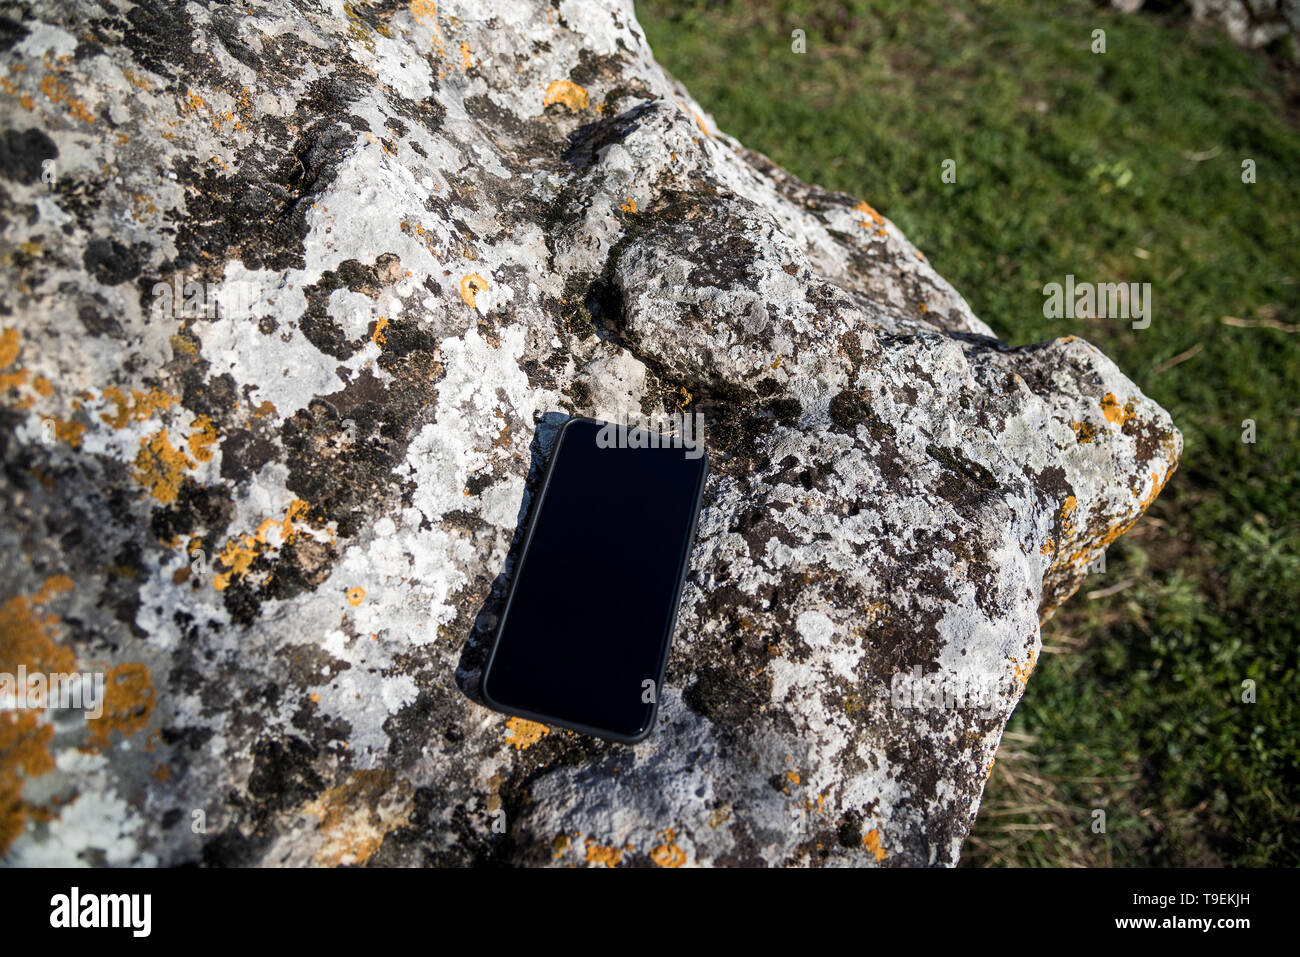 Black smartphone Apple iPhone Xs Max is lying on a rock in the sun Stock Photo